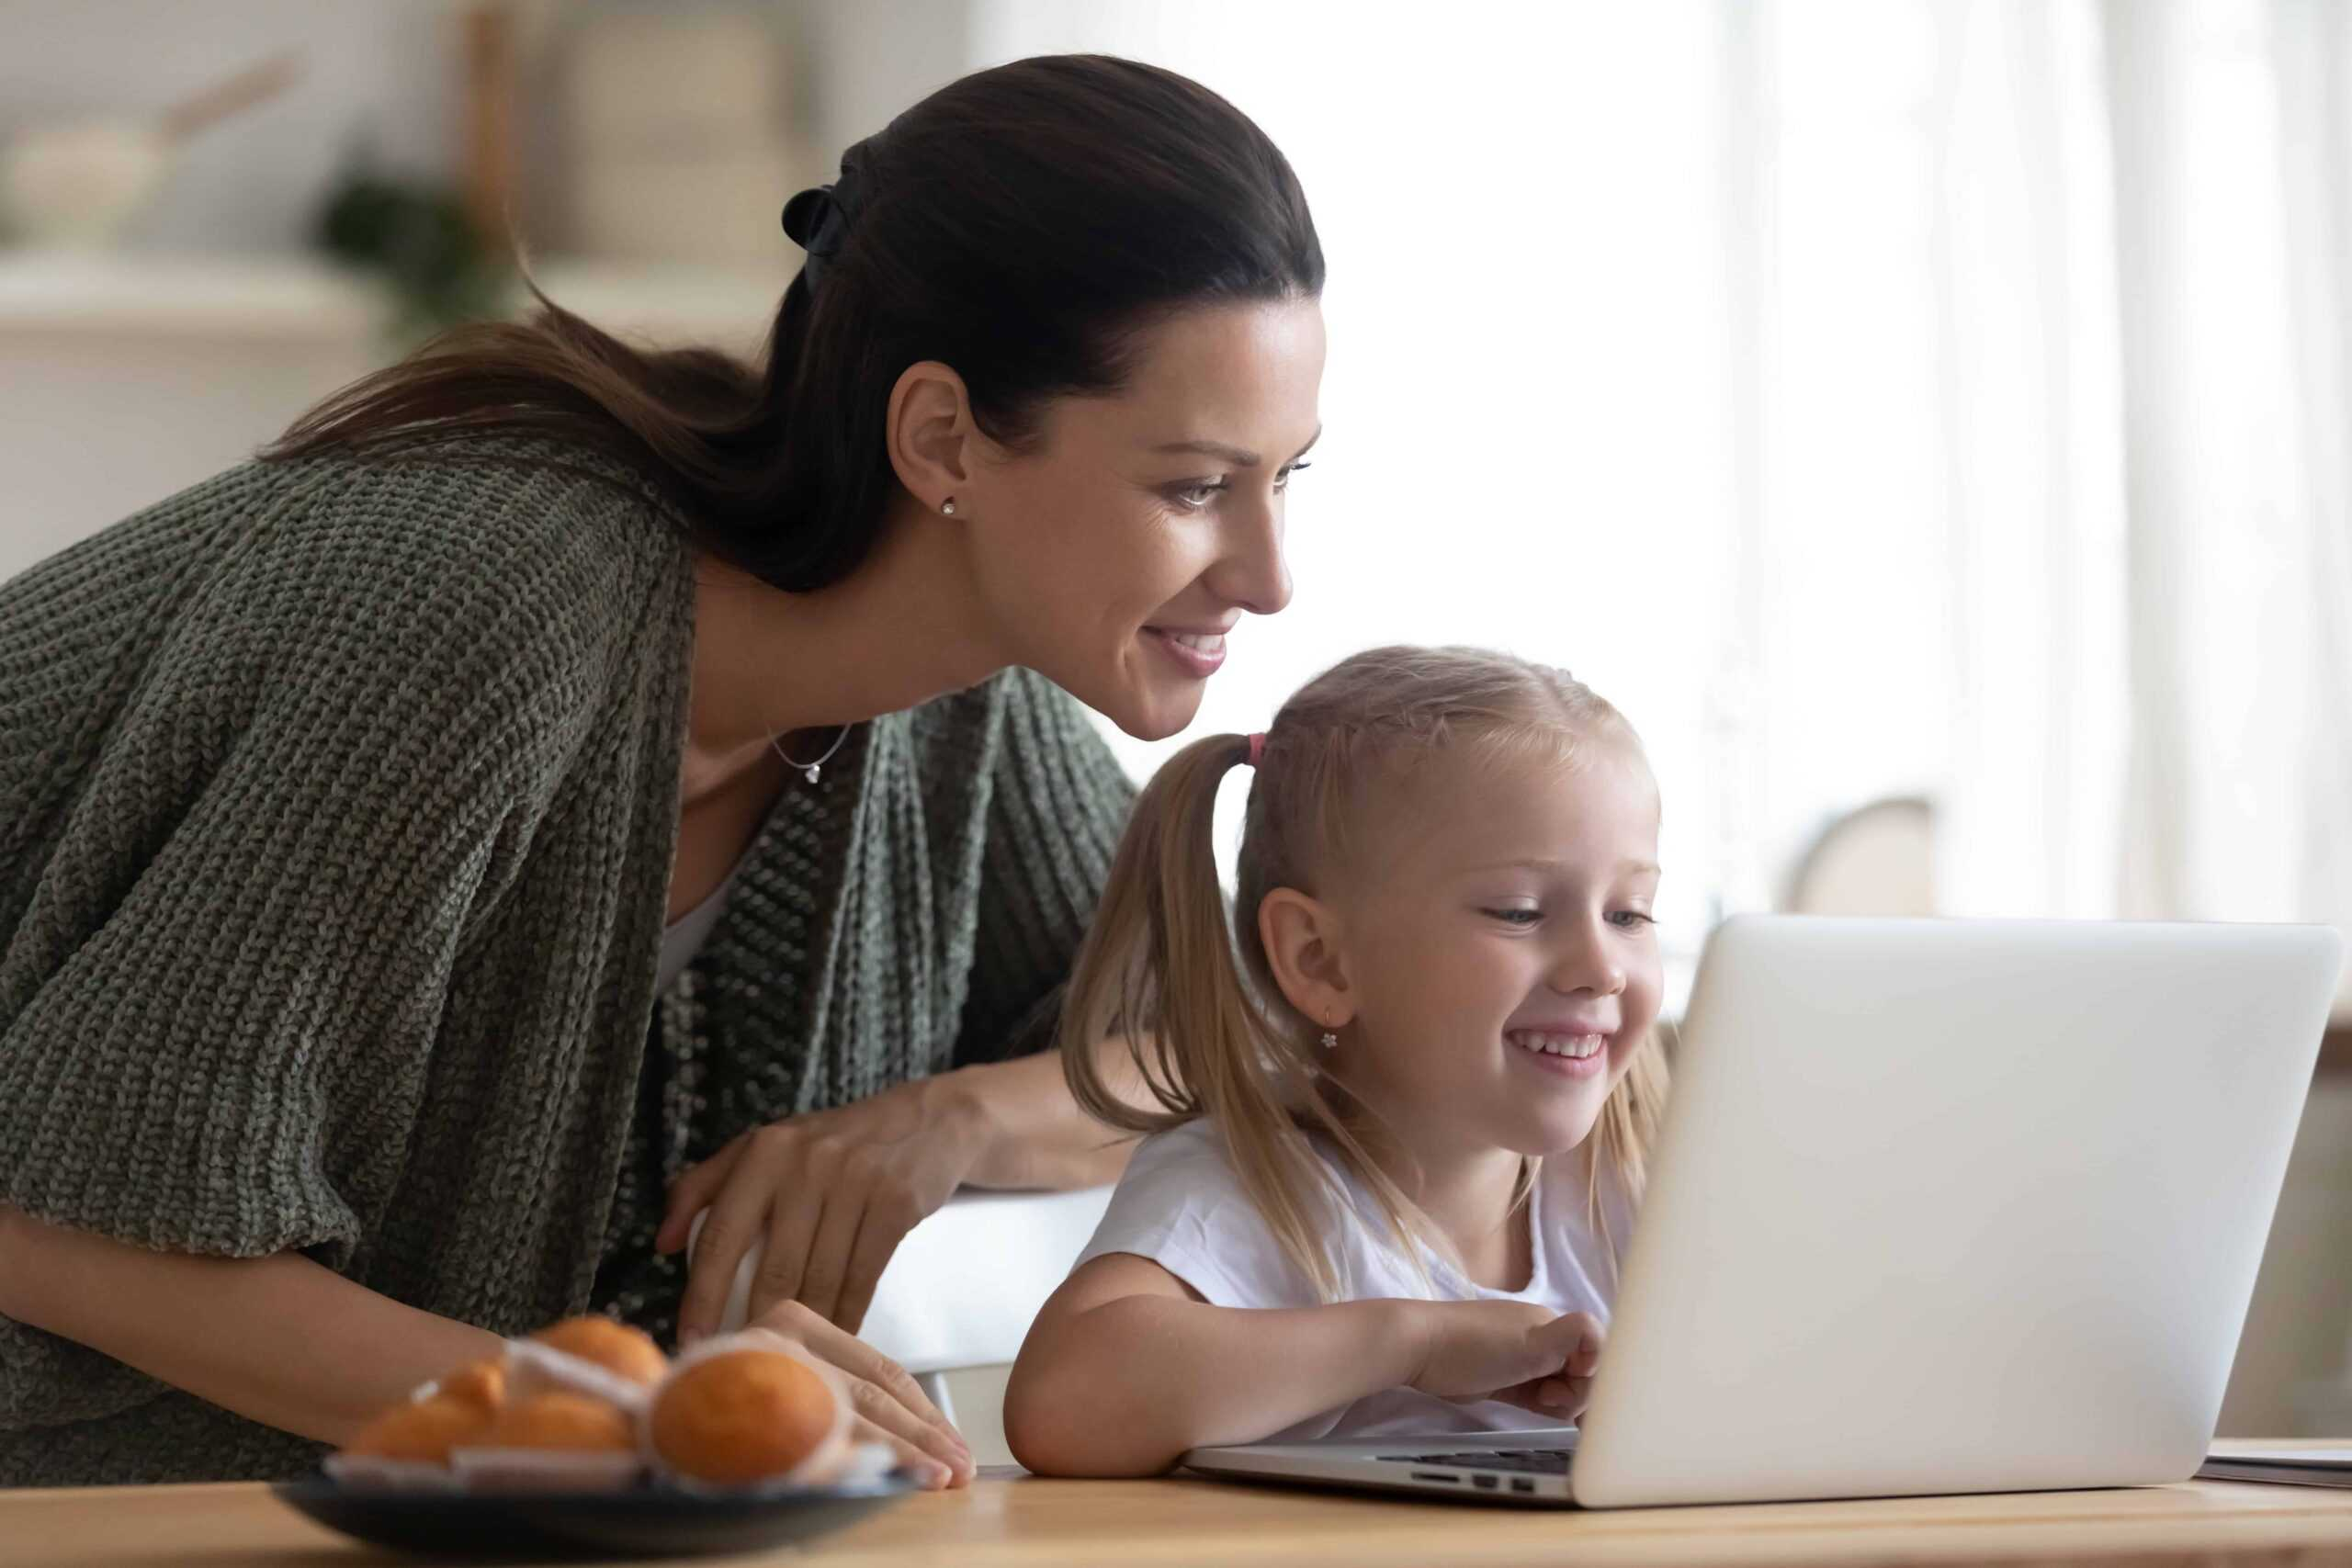 Mom & Daughter smiling looking at laptop